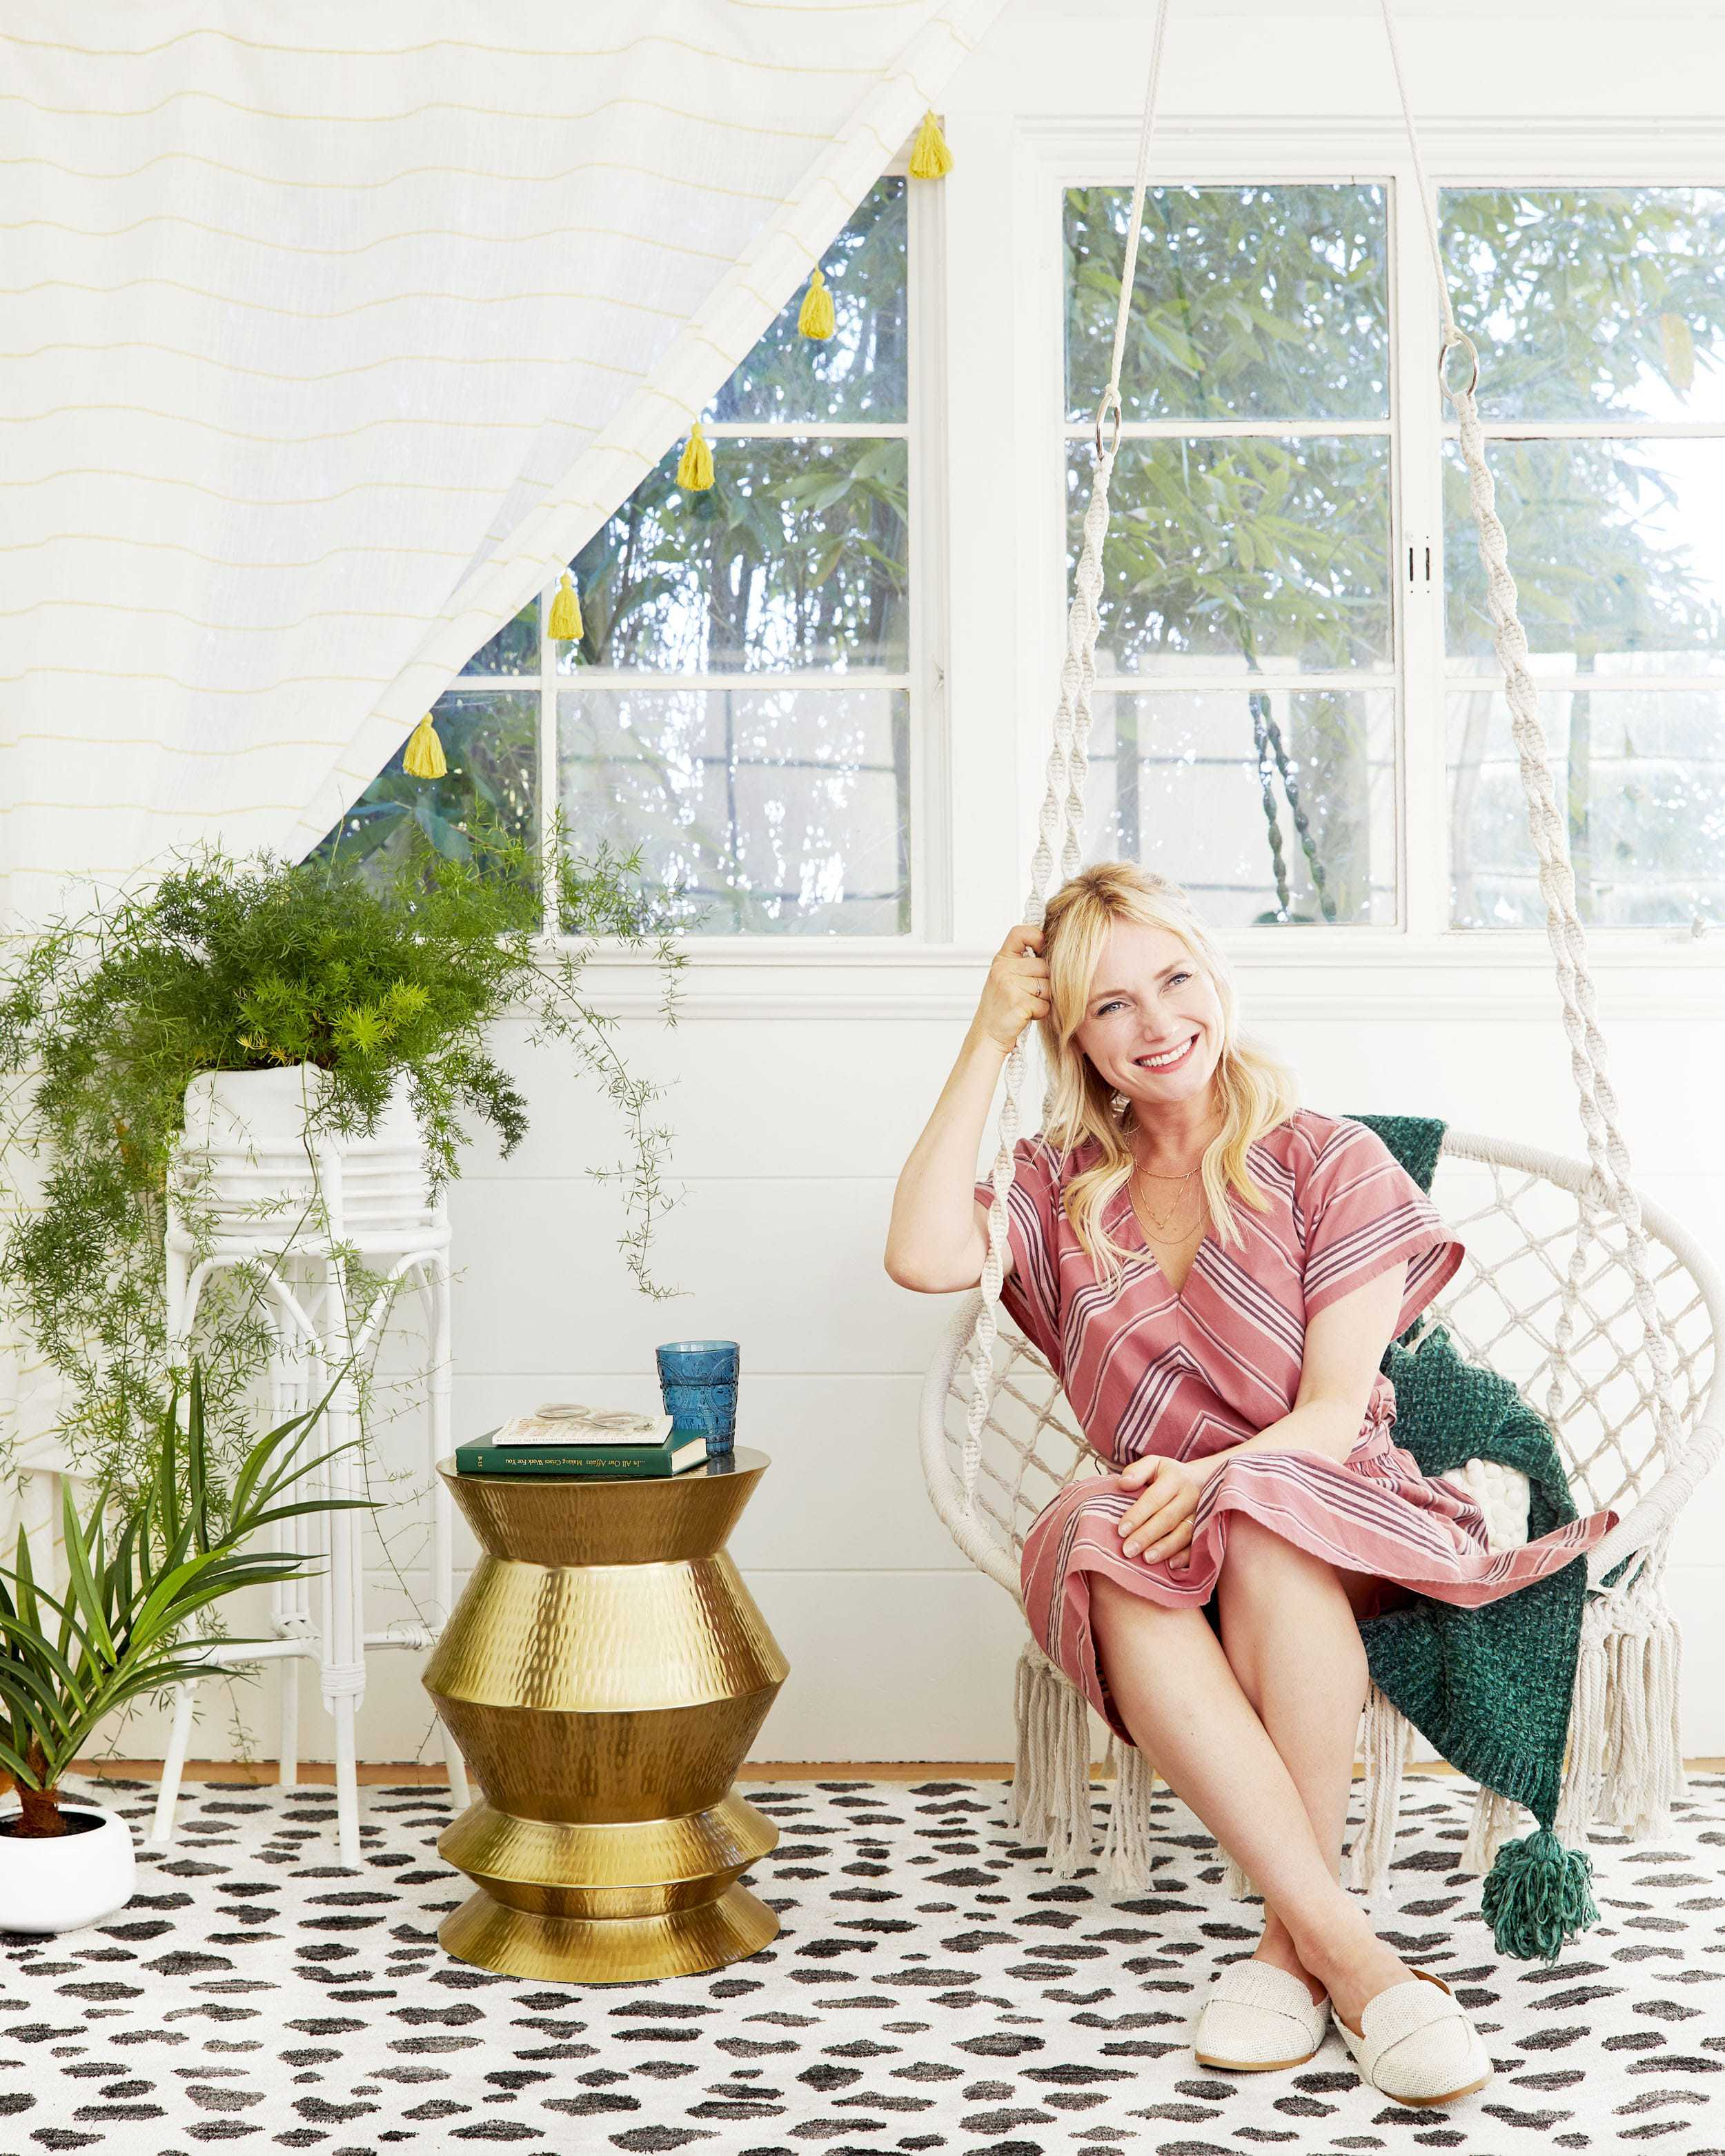 Target Opalhouse Spring 2019 Emily Henderson Portraits Lores2